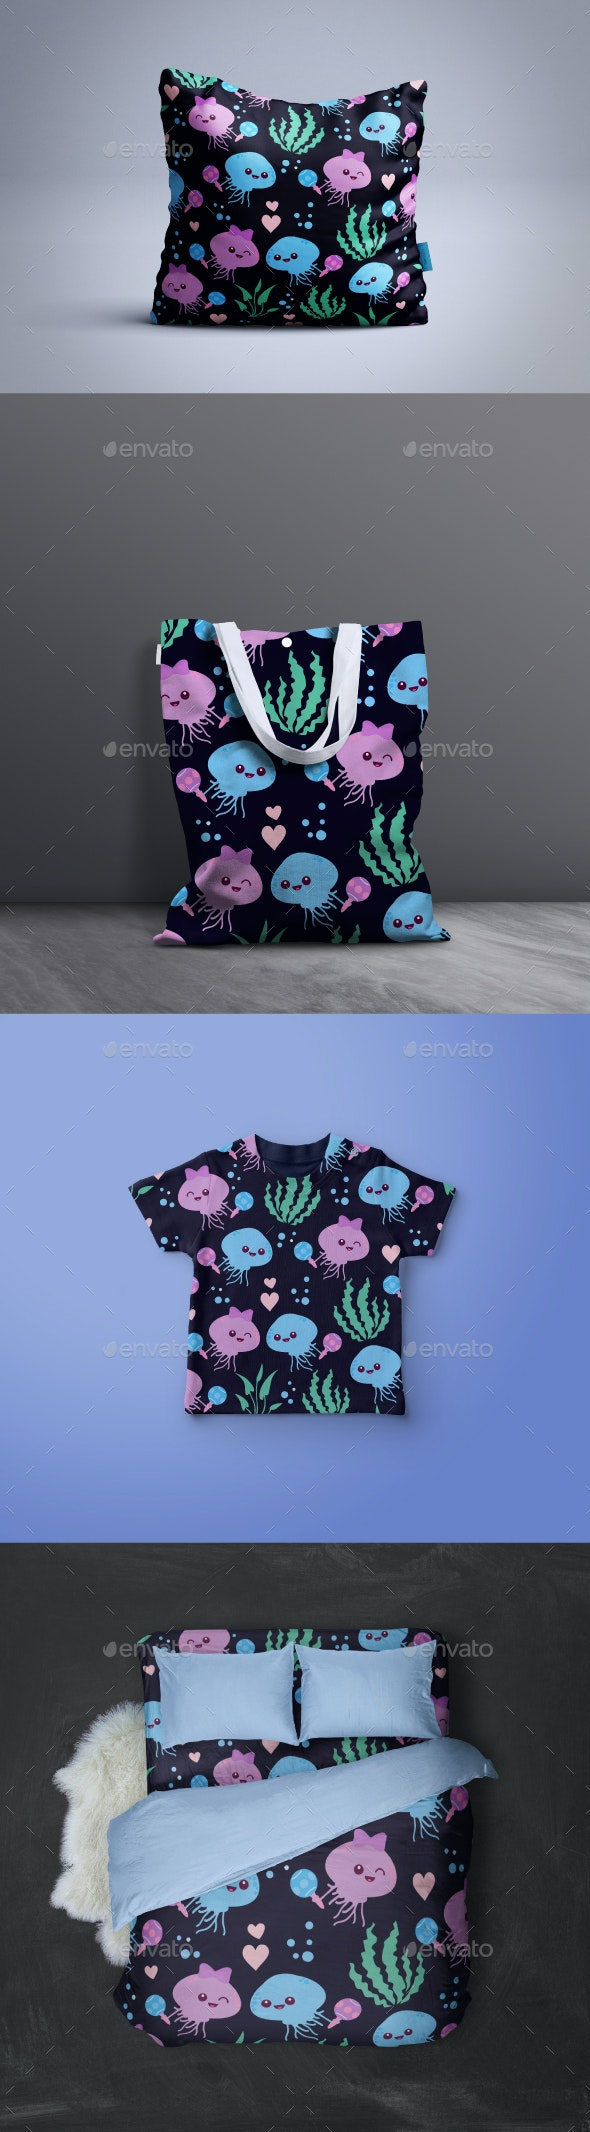 Seamless Octopus Fall in Love Pattern - Patterns Decorative